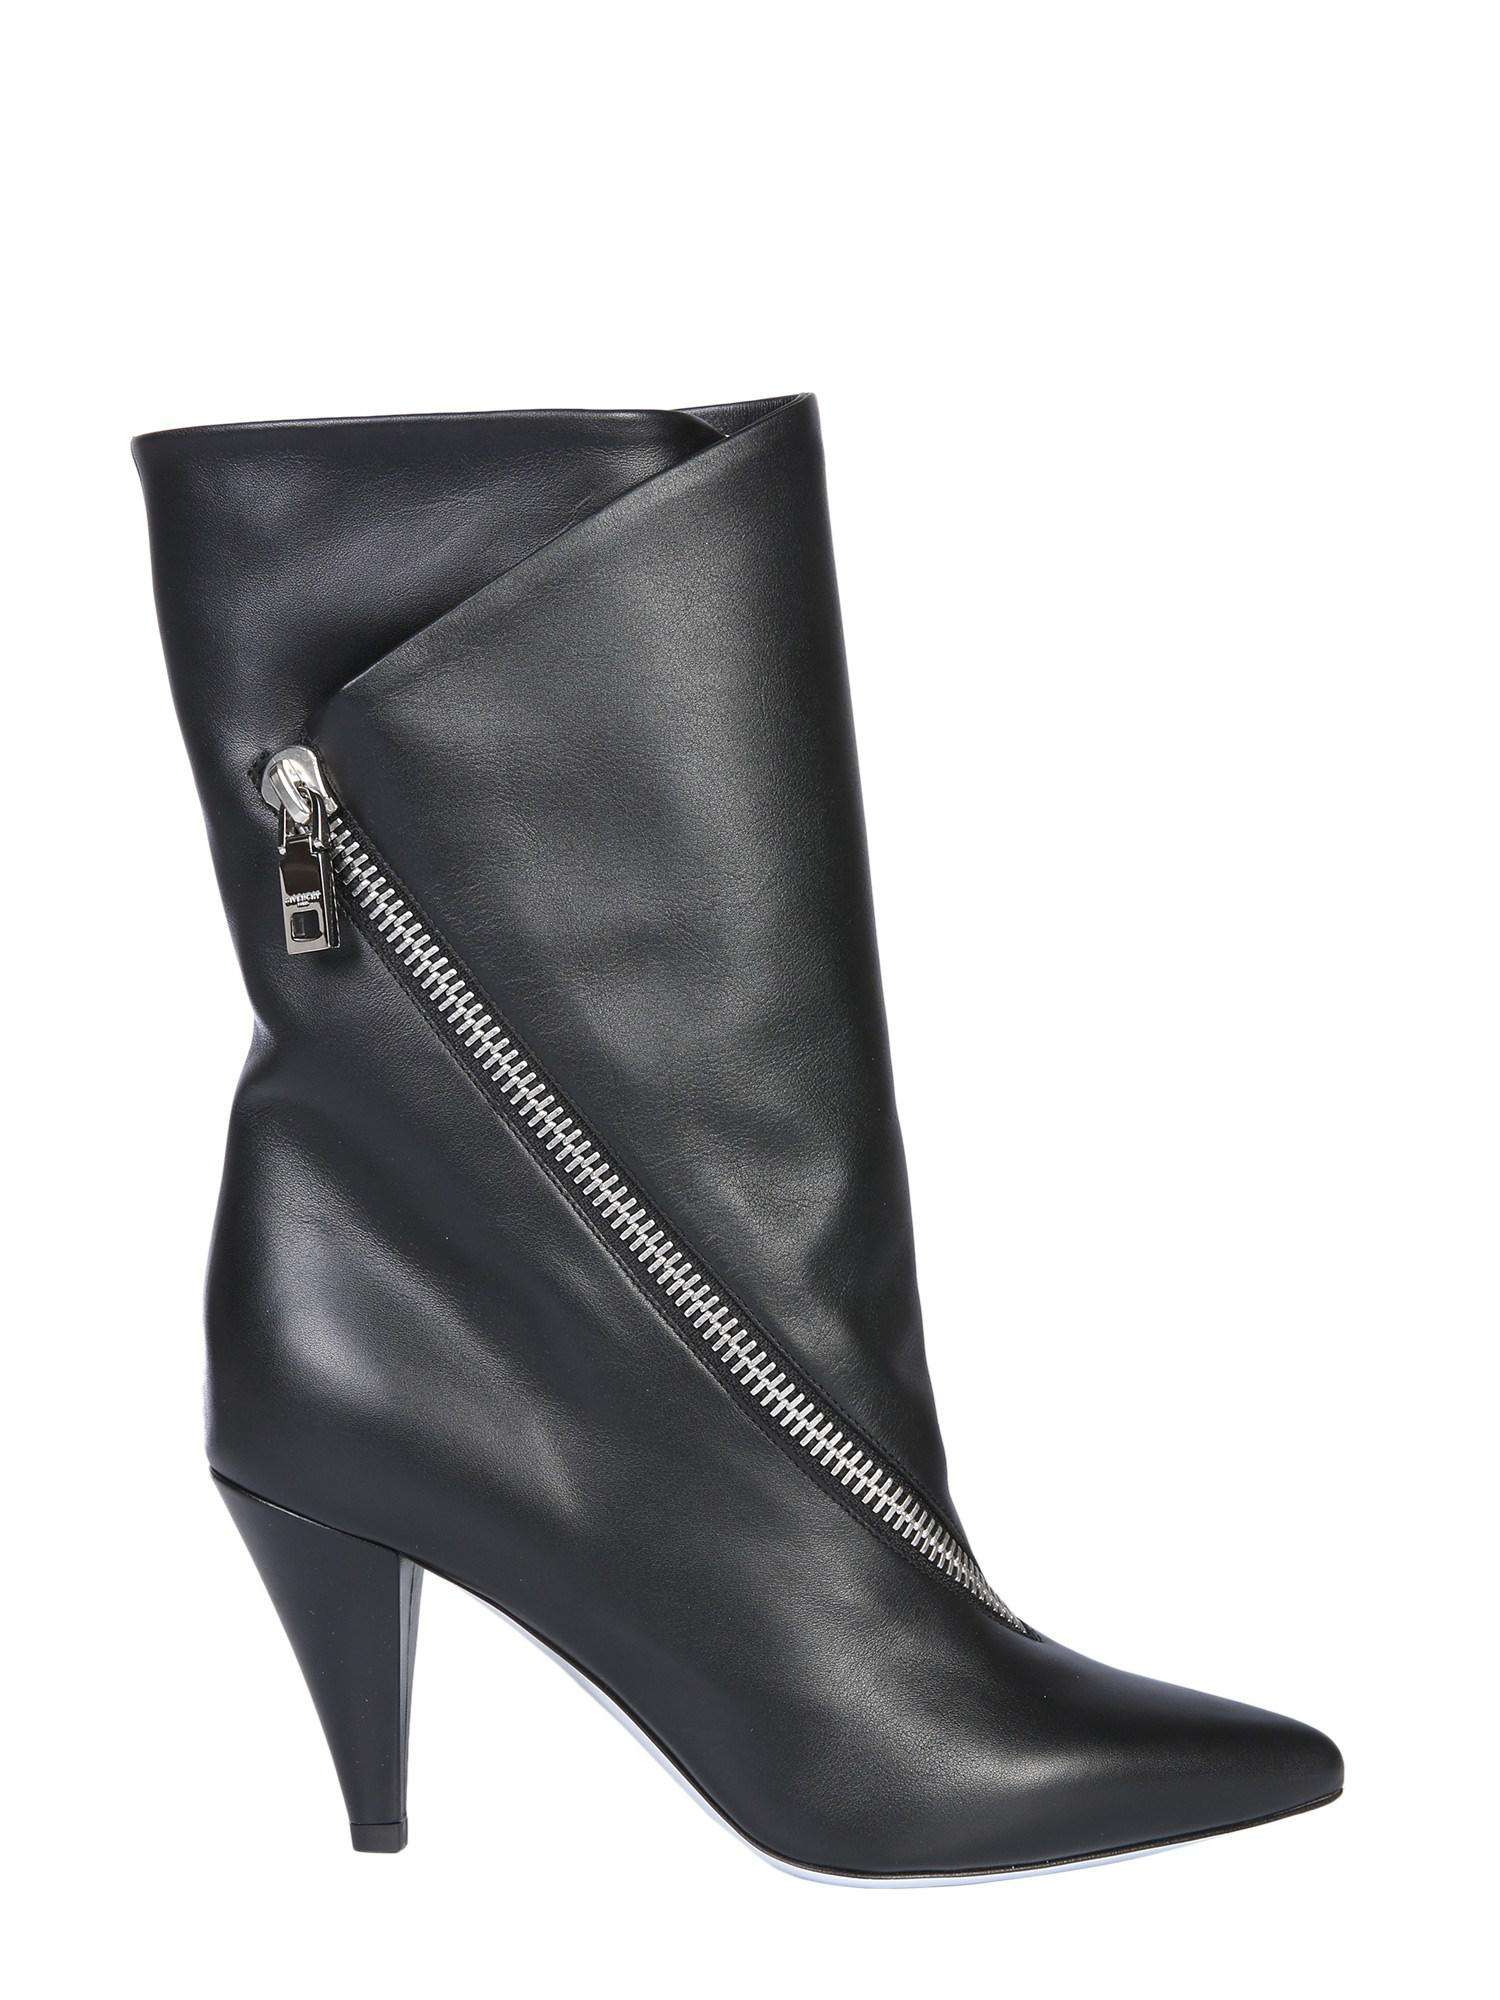 b059d1fc79c Lyst - Givenchy Medium Leather Boots With Zip in Black